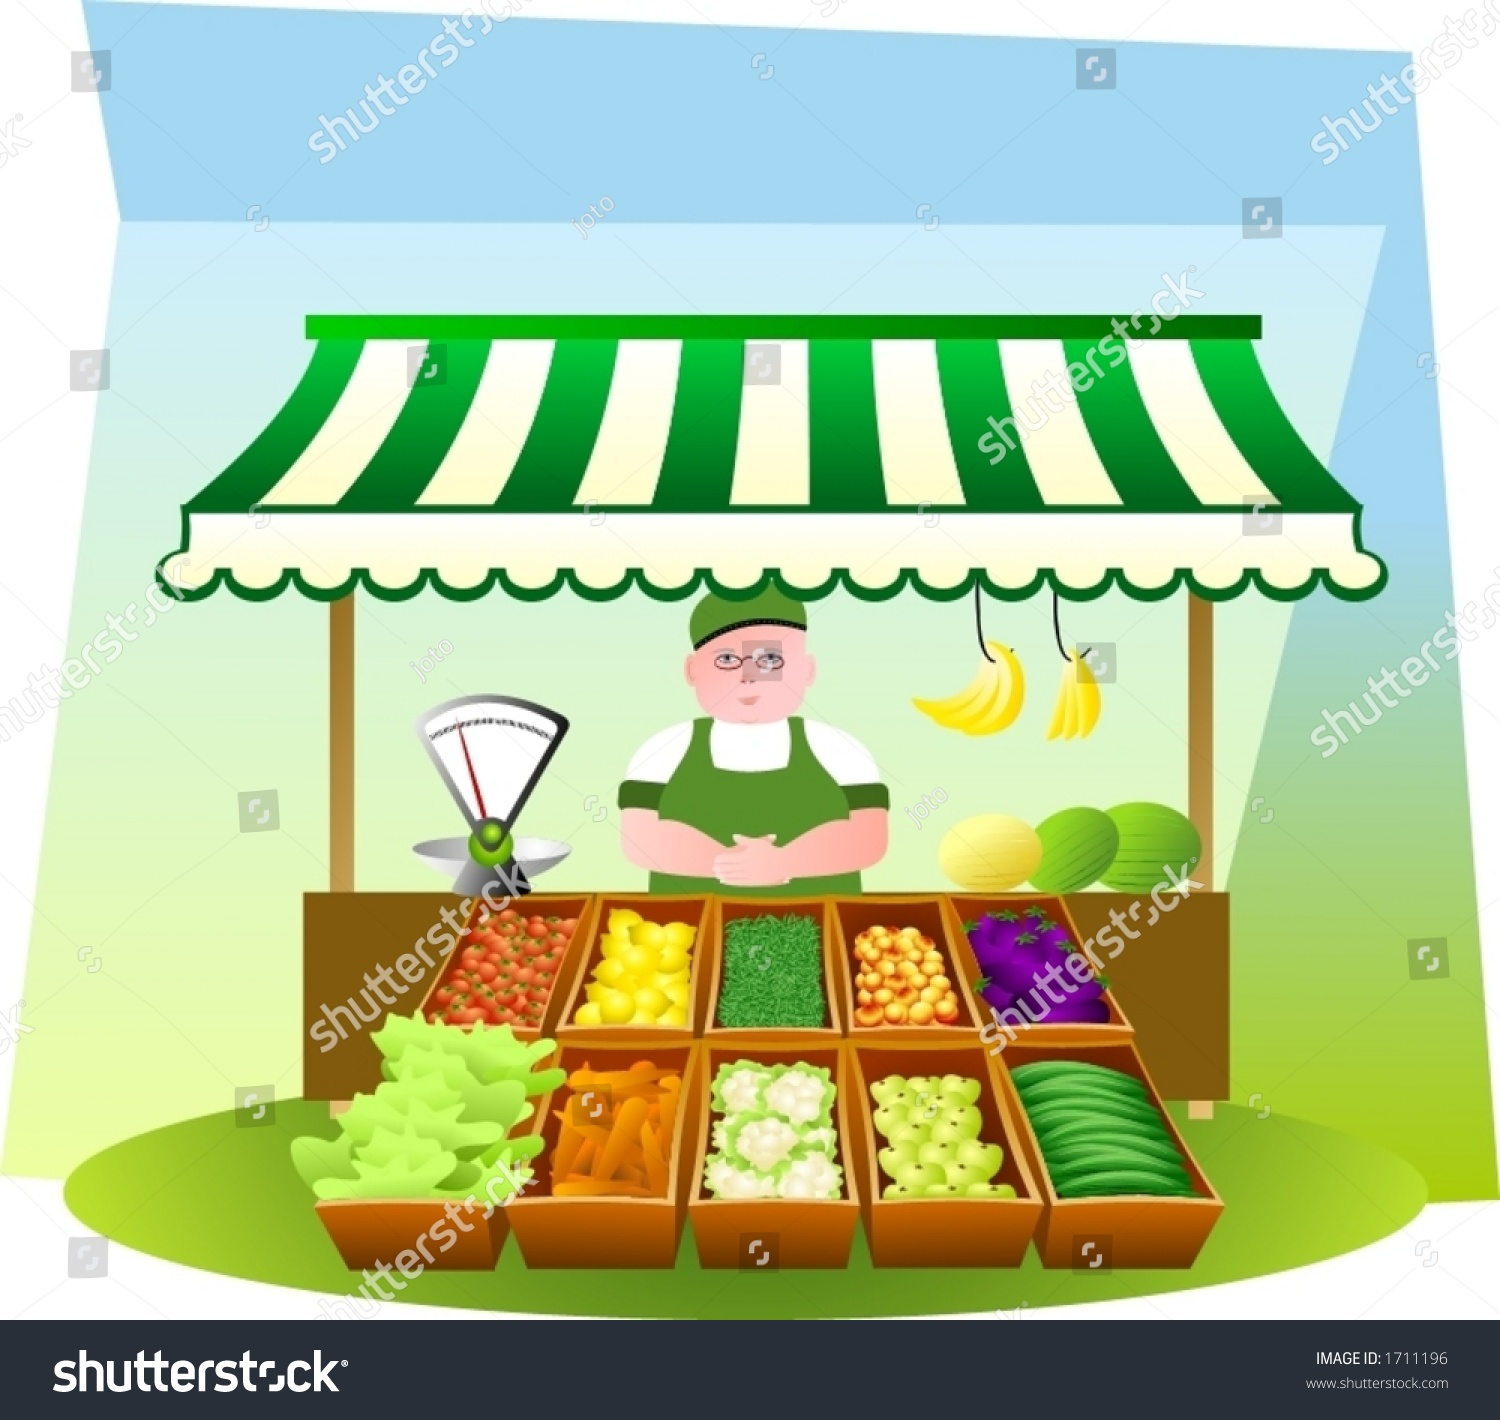 (the green-grocer is fully drawn)